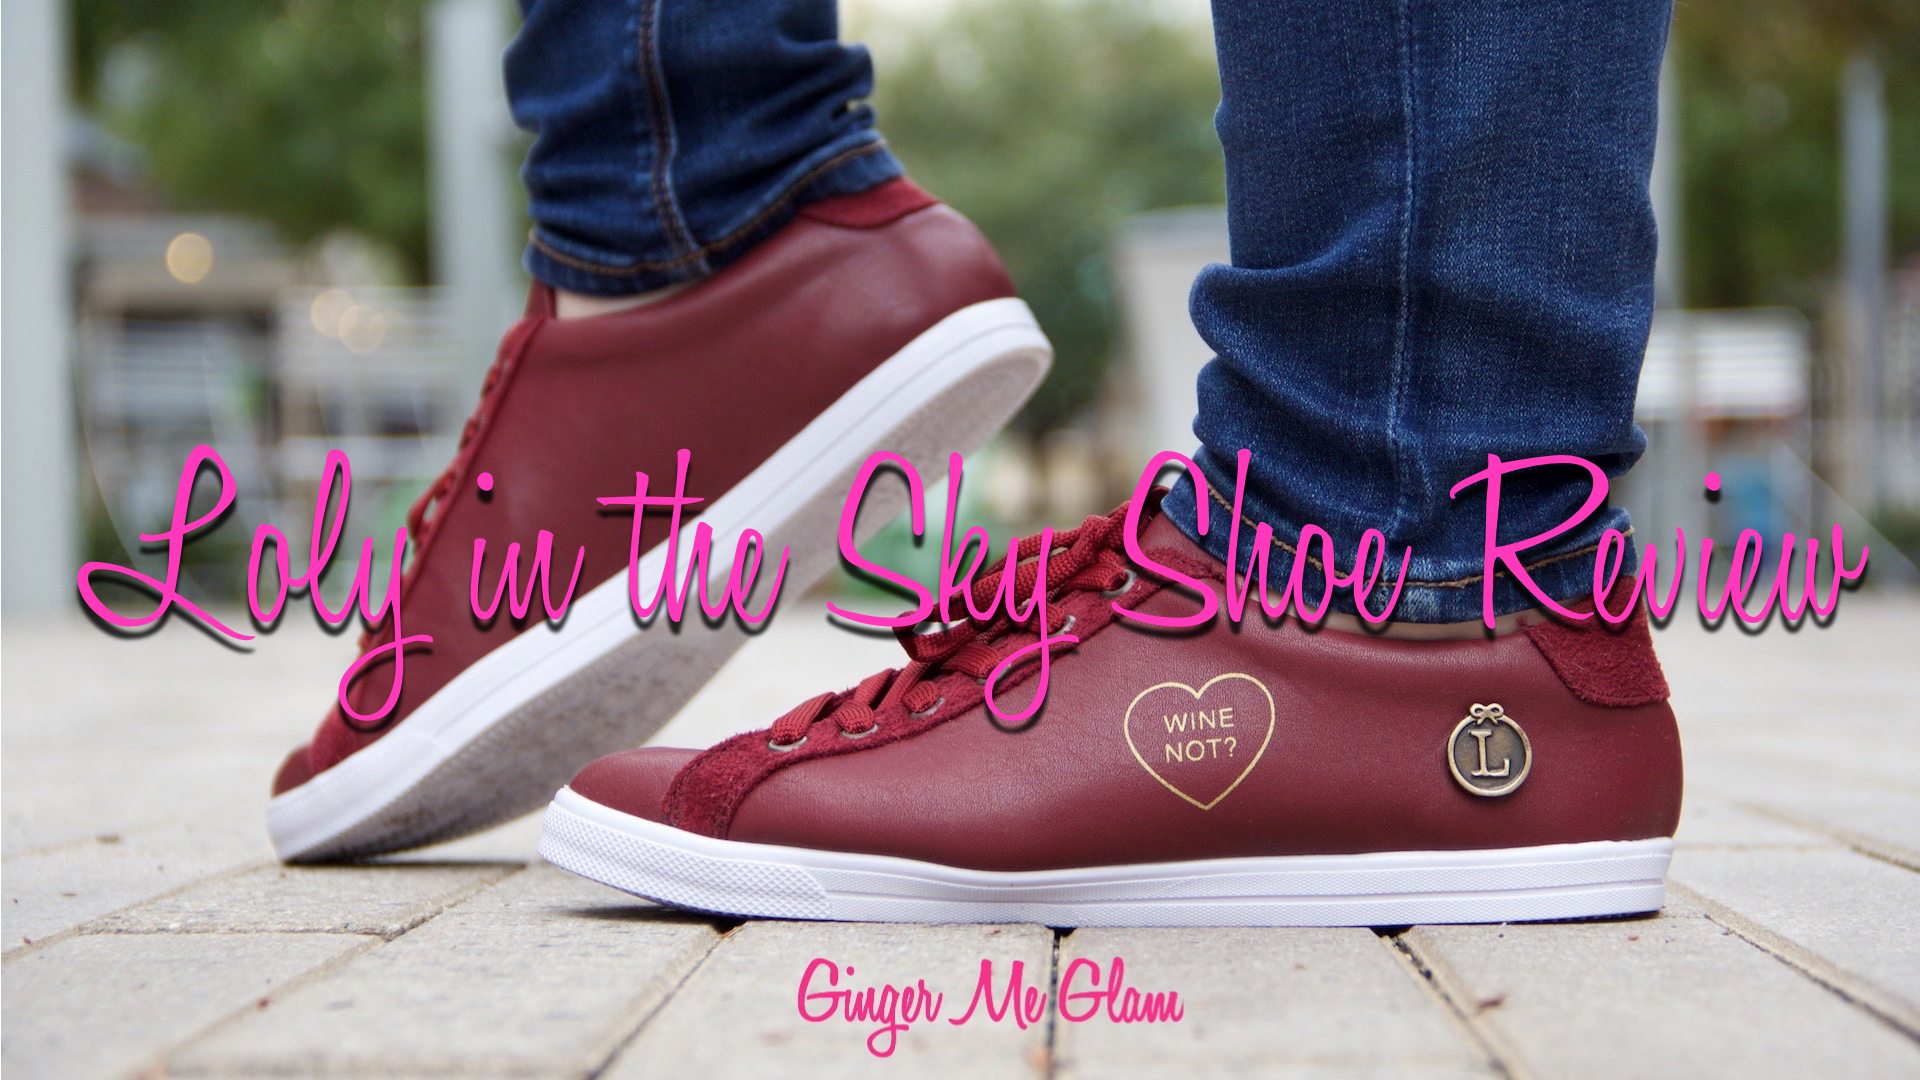 loly-in-the-sky-shoe-review.001.jpg